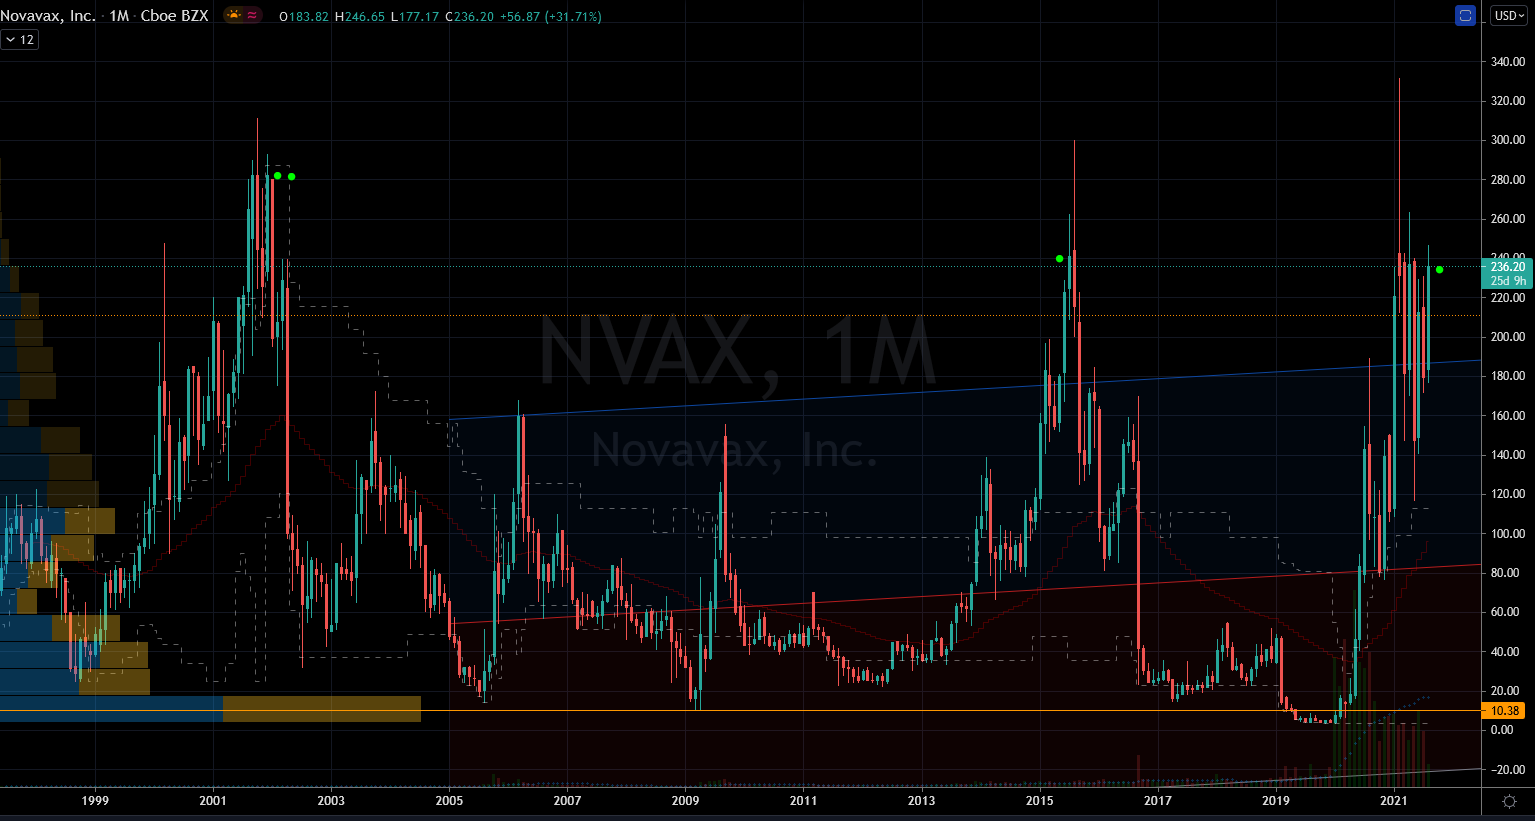 Novavax (NVAX) Stock Chart Showing Monthly Highest Monthly Closes